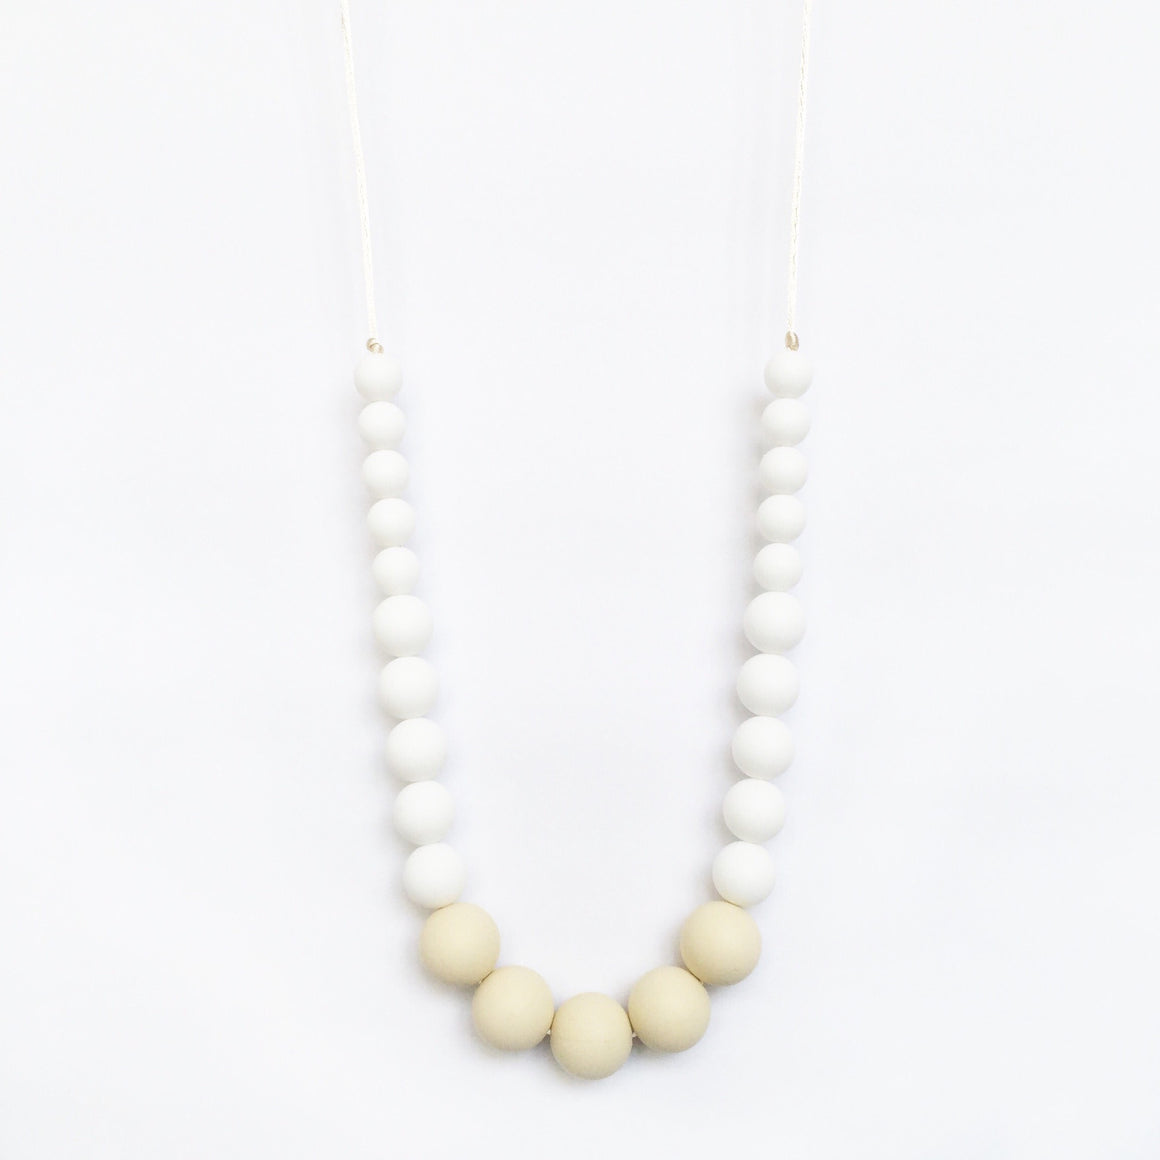 Color Block Silicone Necklace - White